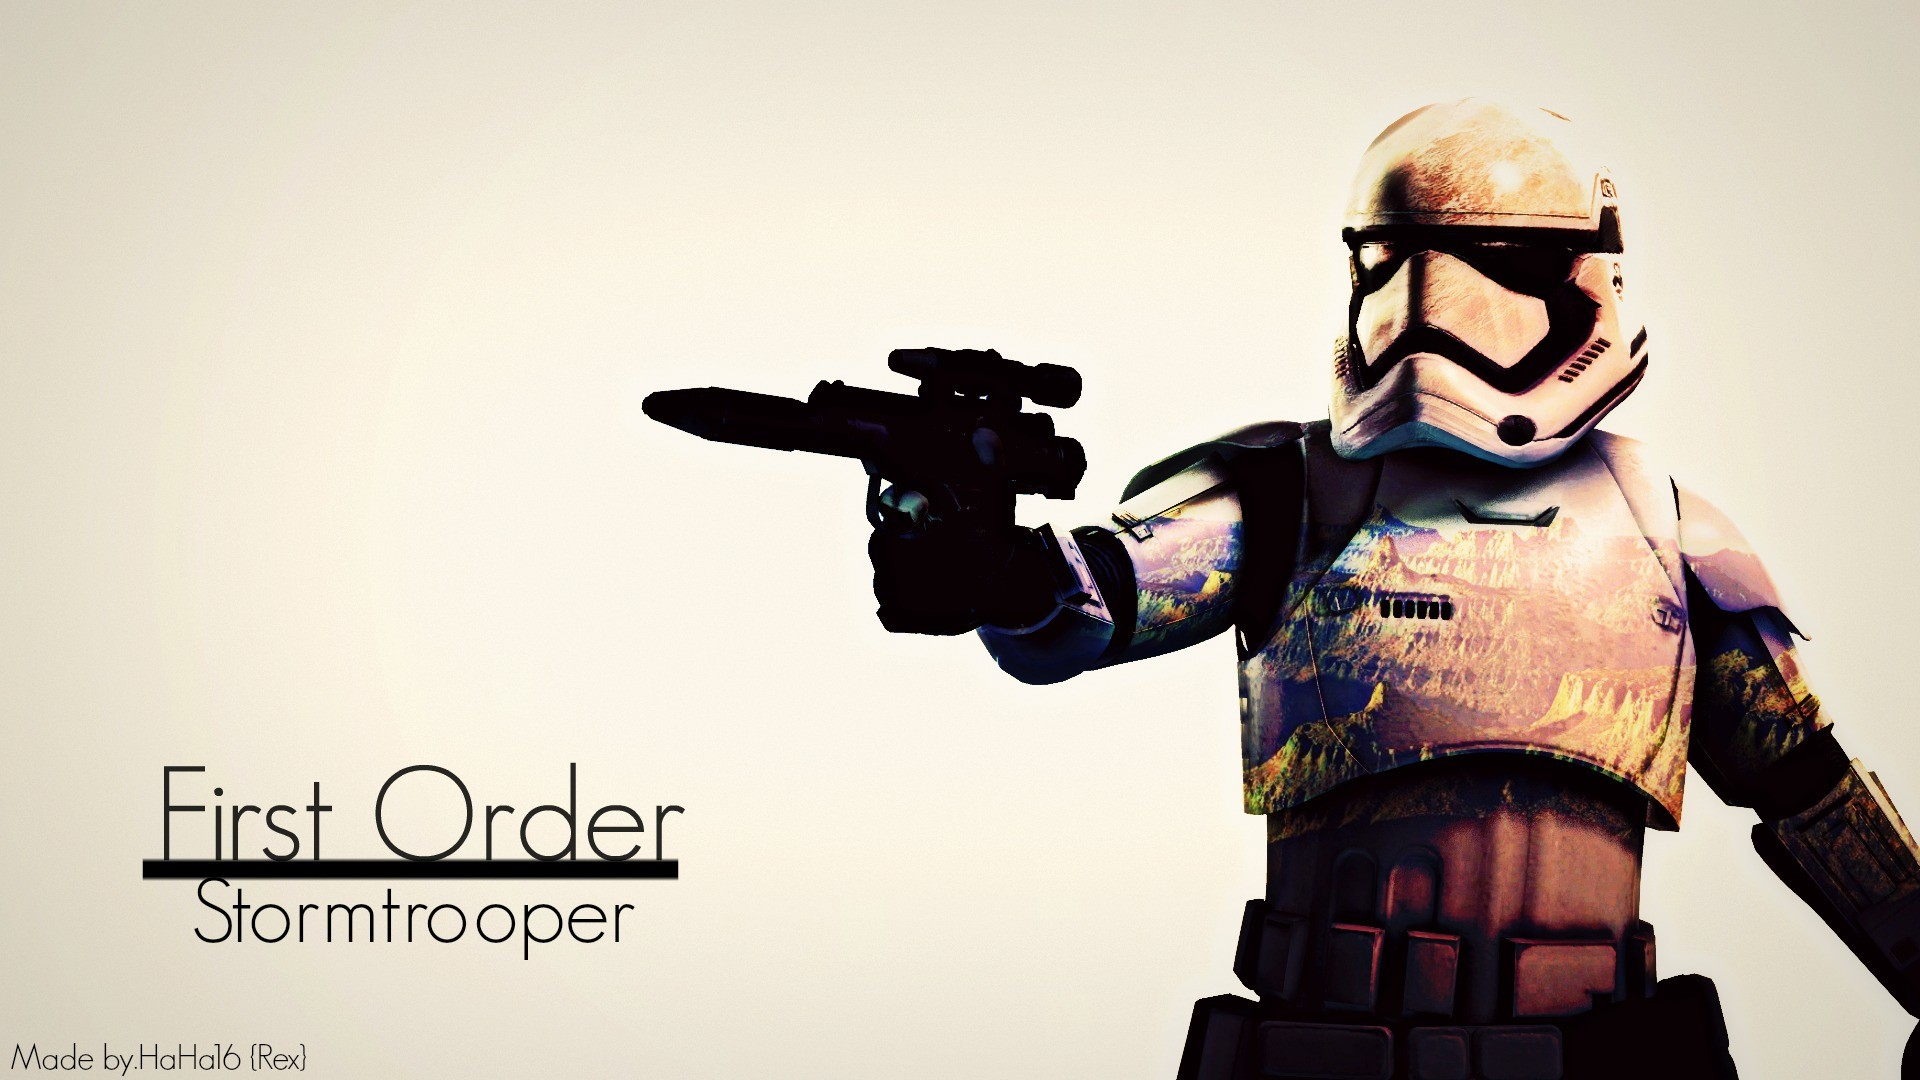 First Order Stormtrooper by HaHa16RexMaker First Order Stormtrooper by  HaHa16RexMaker